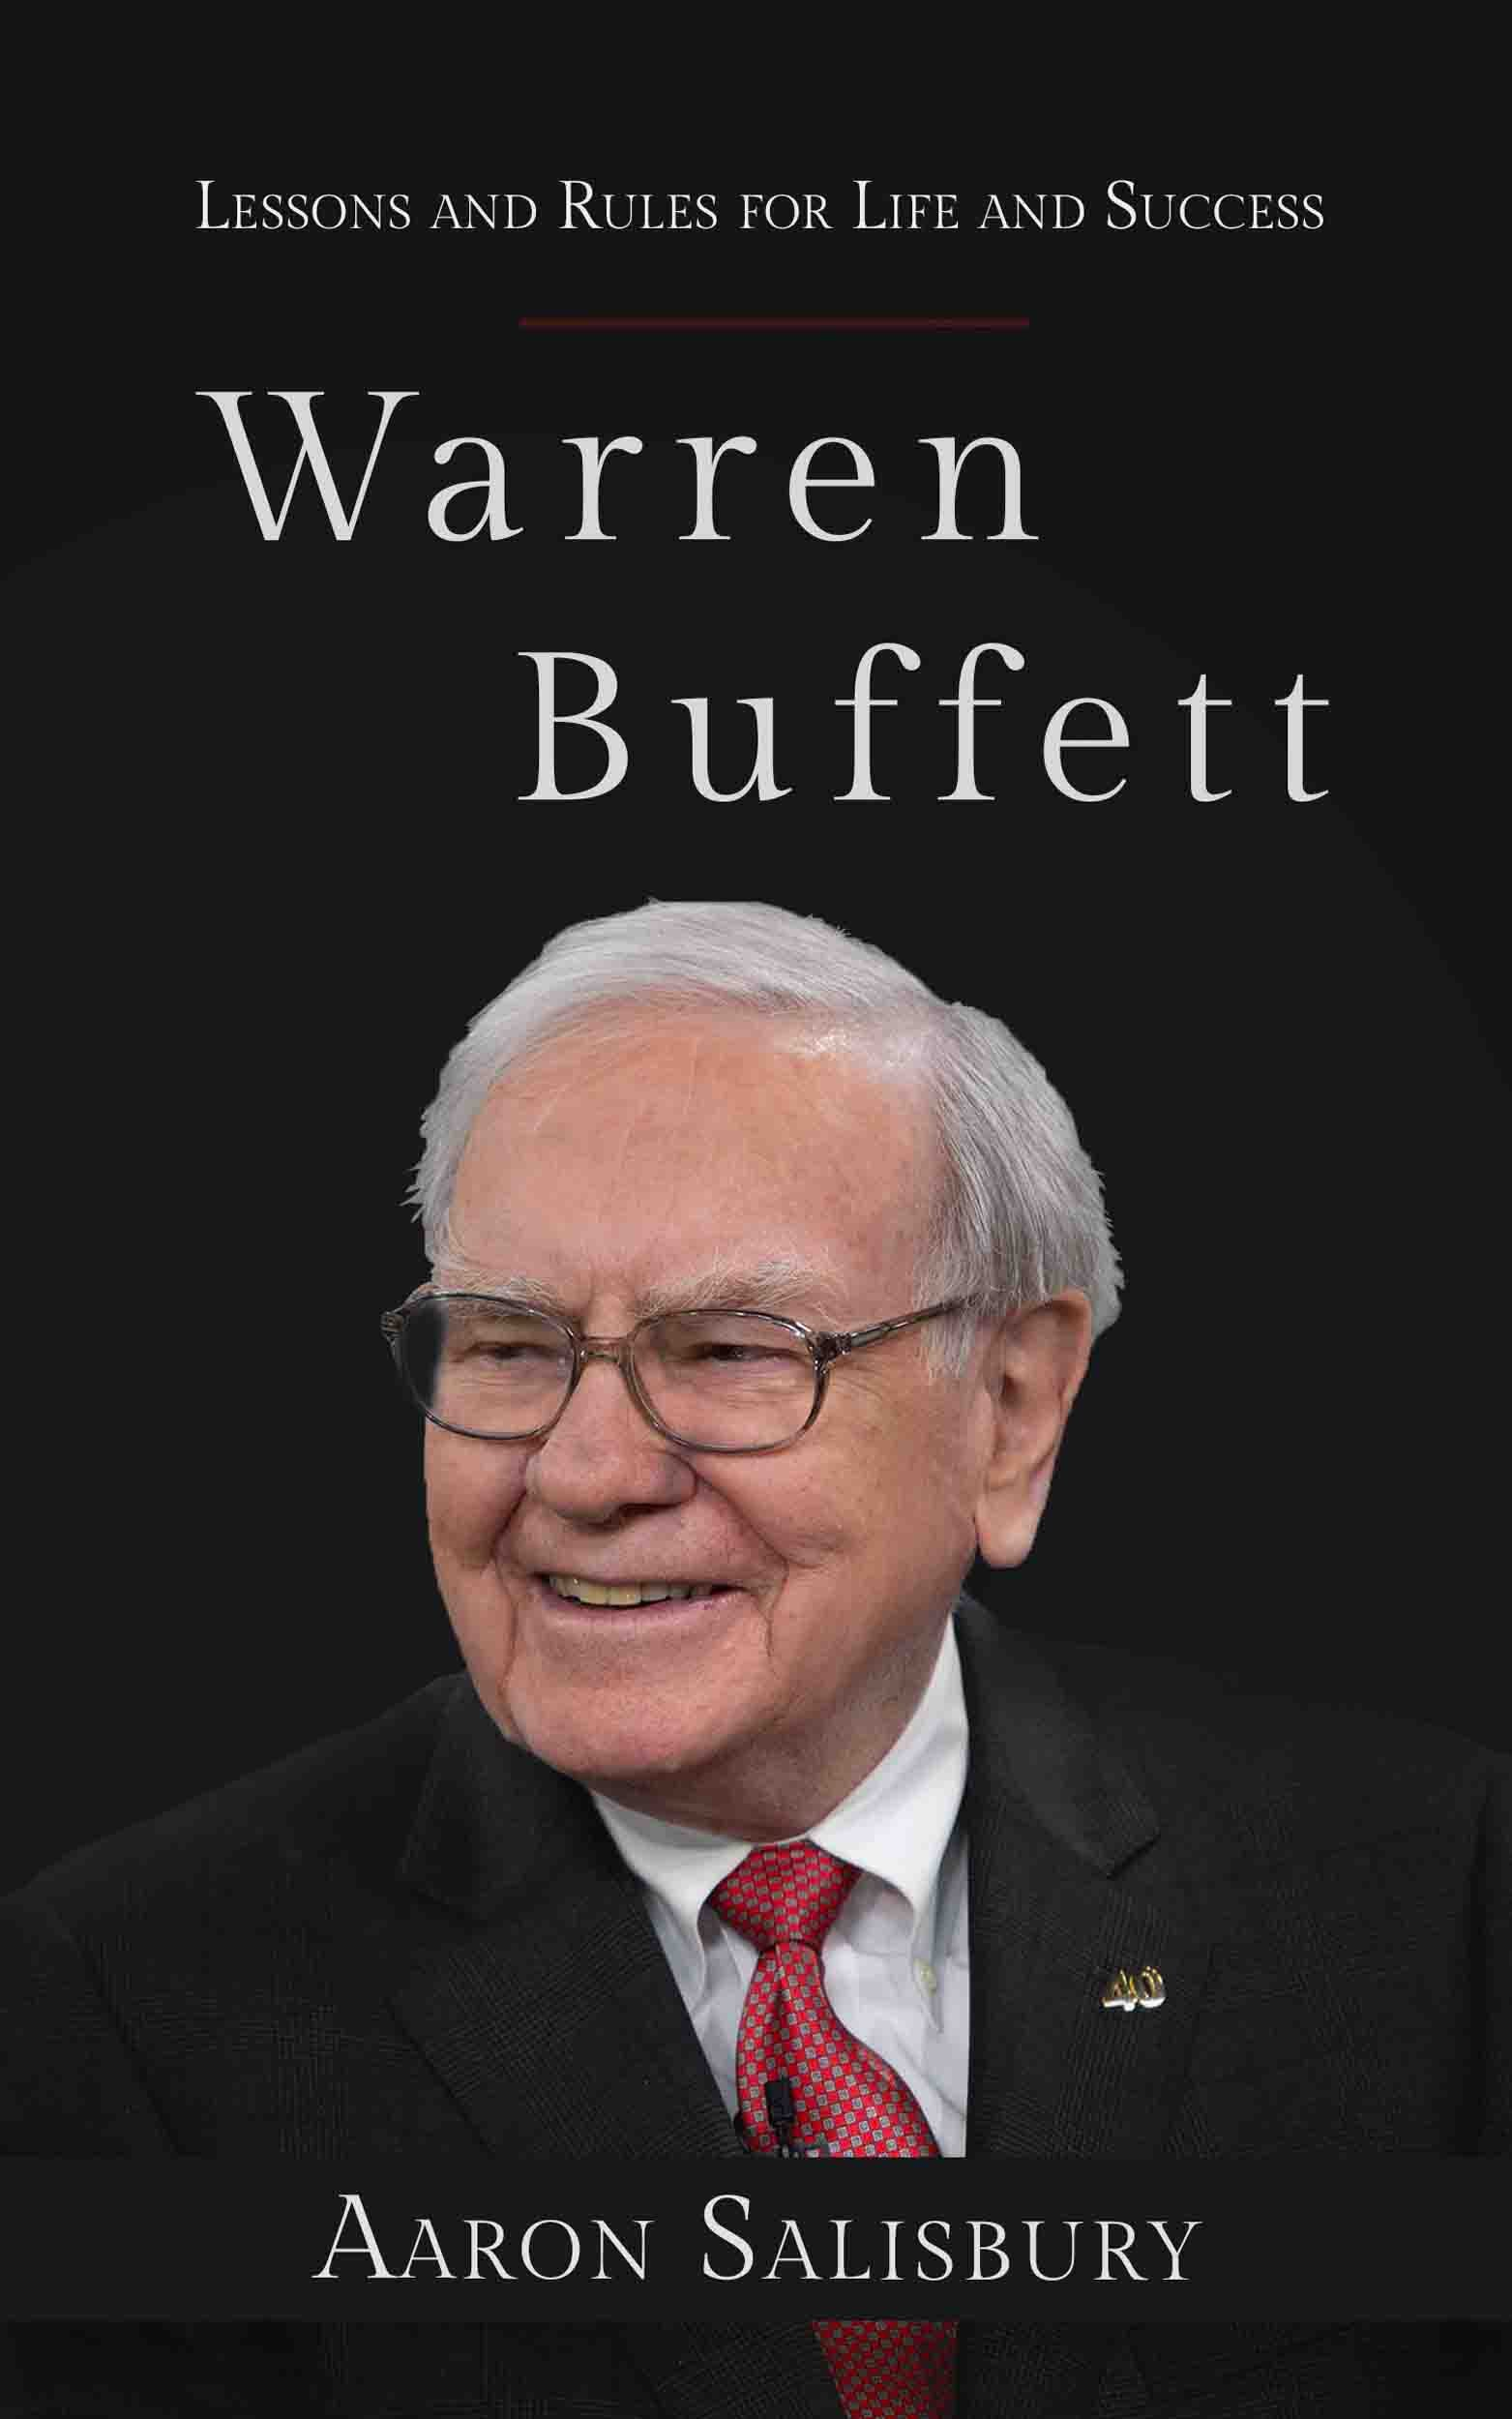 Warren Buffett: Lessons and Rules for Life and Success